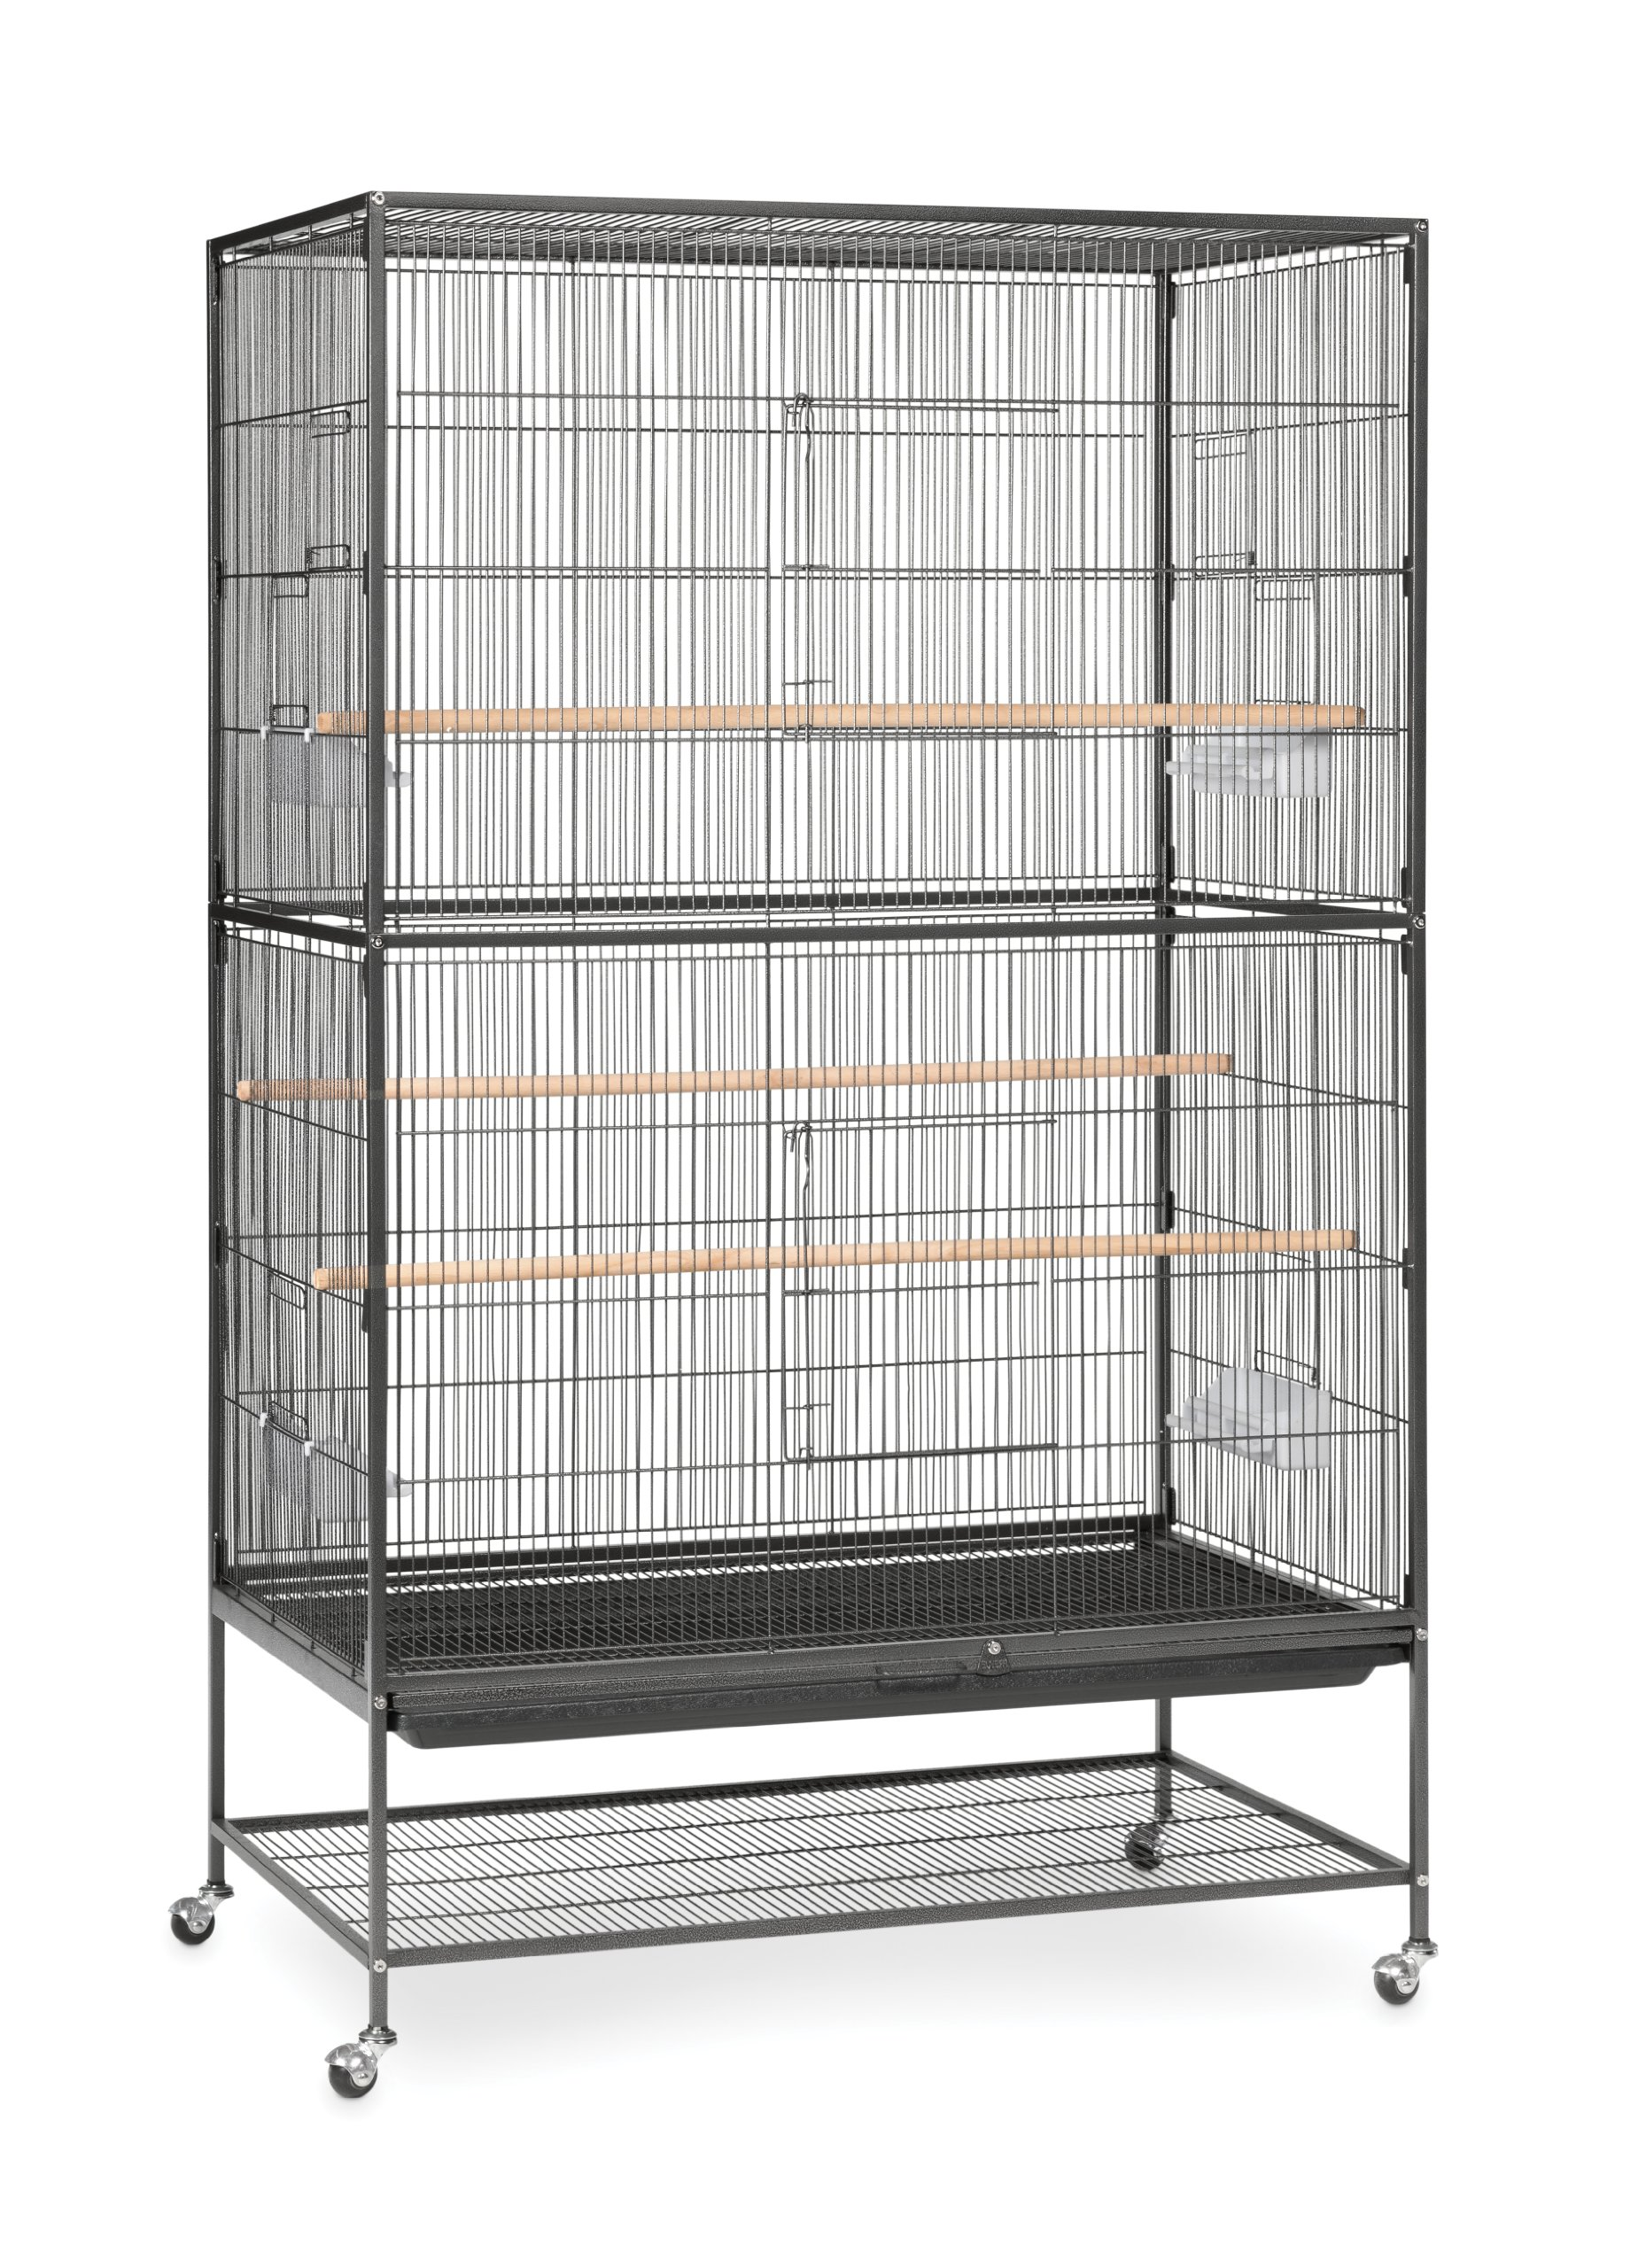 Prevue Hendryx F050 Pet Products Wrought Iron Flight Cage, X-Large, Hammertone Black by Prevue Hendryx